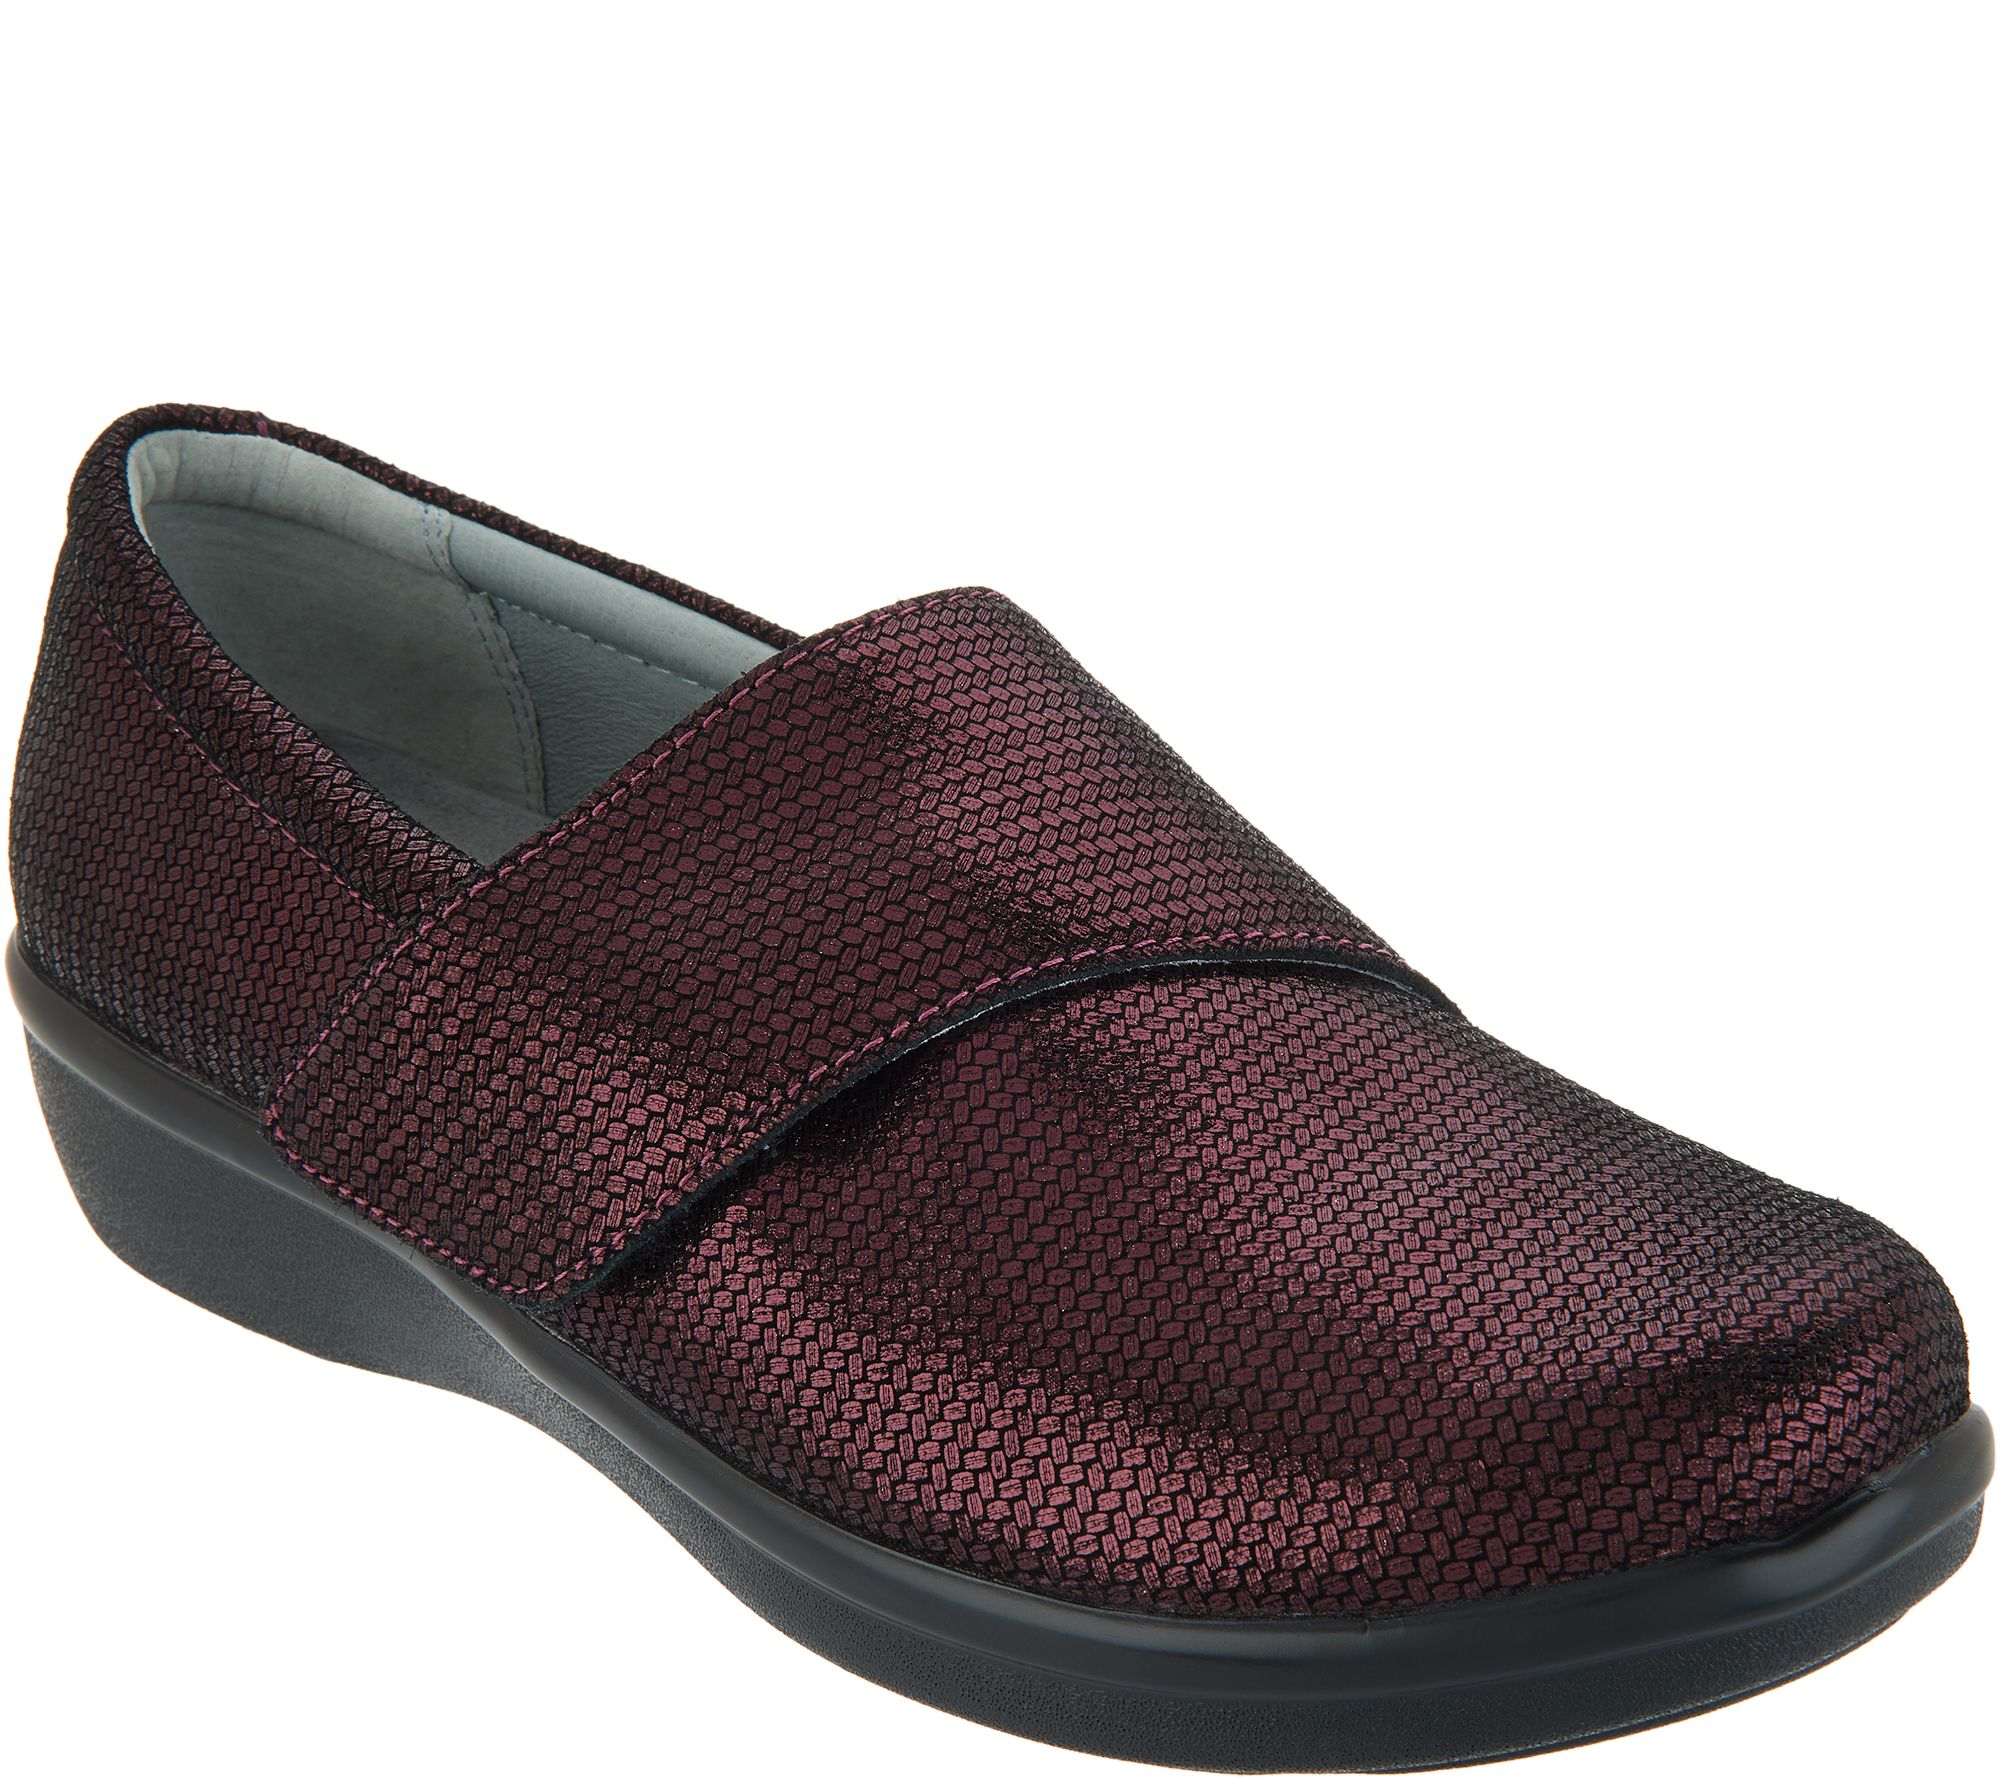 bbbd375d4f1 Alegria Printed Nubuck Slip-On Shoes with Cross Strap - Lauryn - Page 1 —  QVC.com